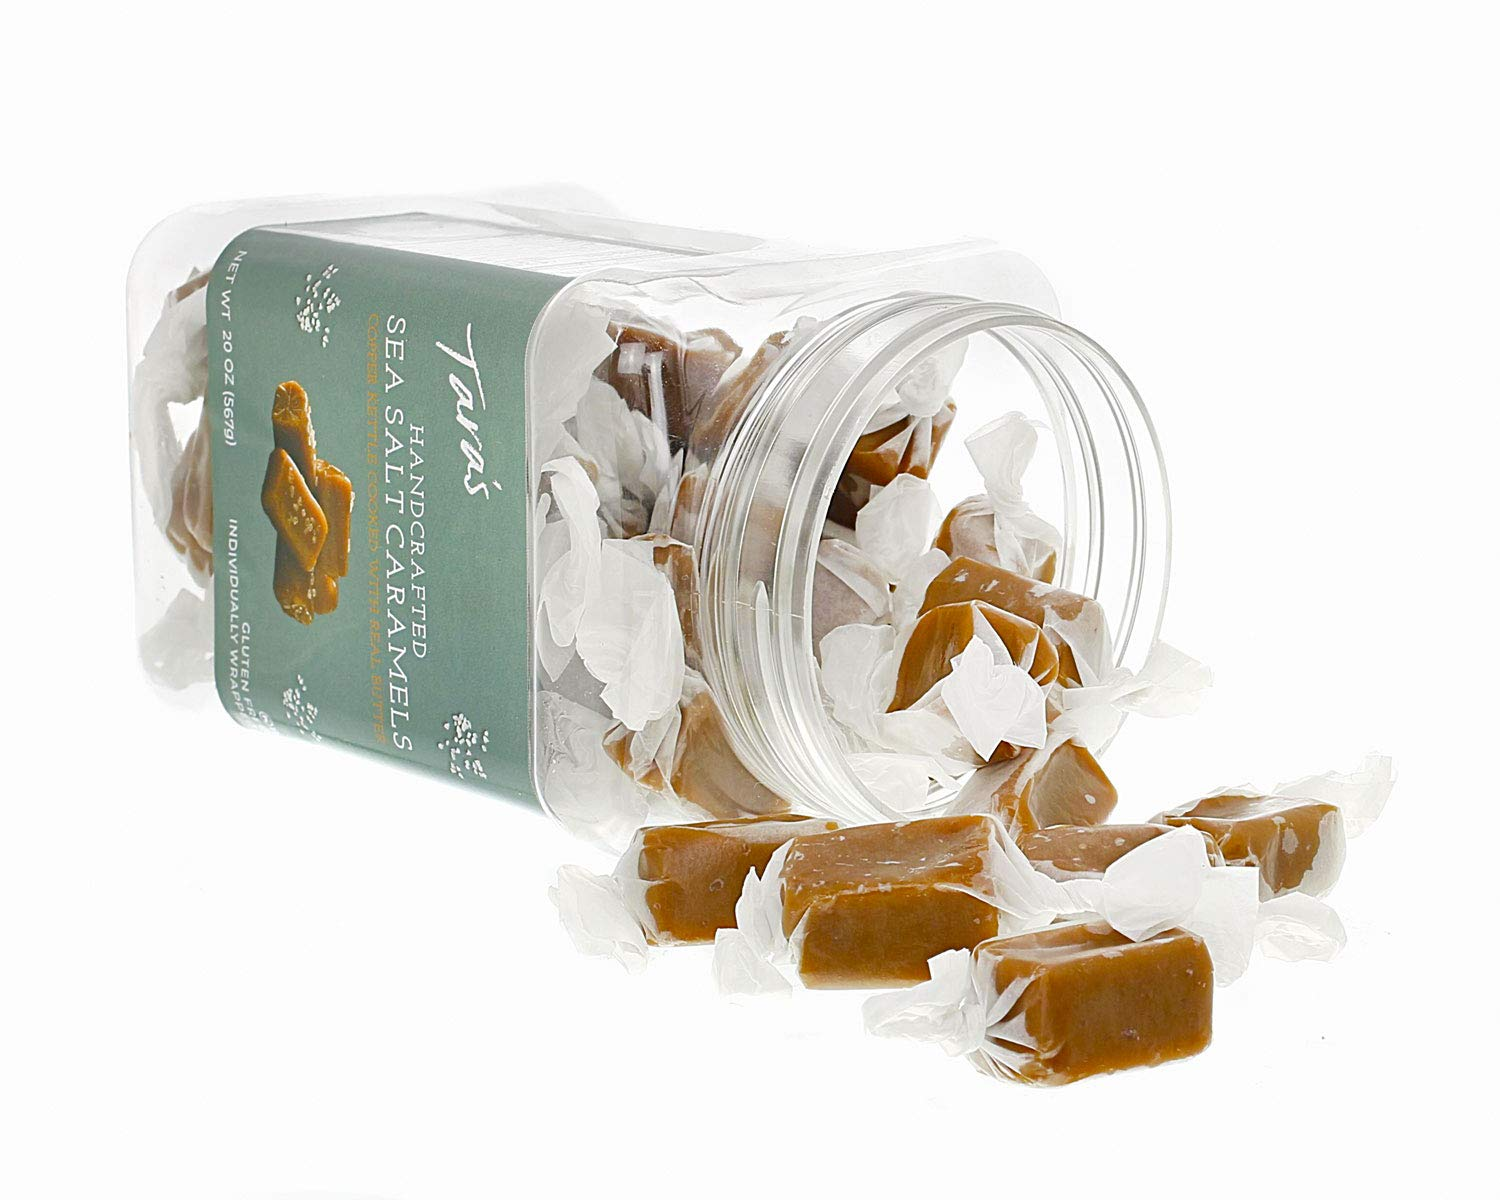 Tara's All Natural Handcrafted Gourmet Sea Salt Caramel: Small Batch, Kettle Cooked, Creamy & Individually Wrapped - 20 Ounce by Tara's (Image #3)